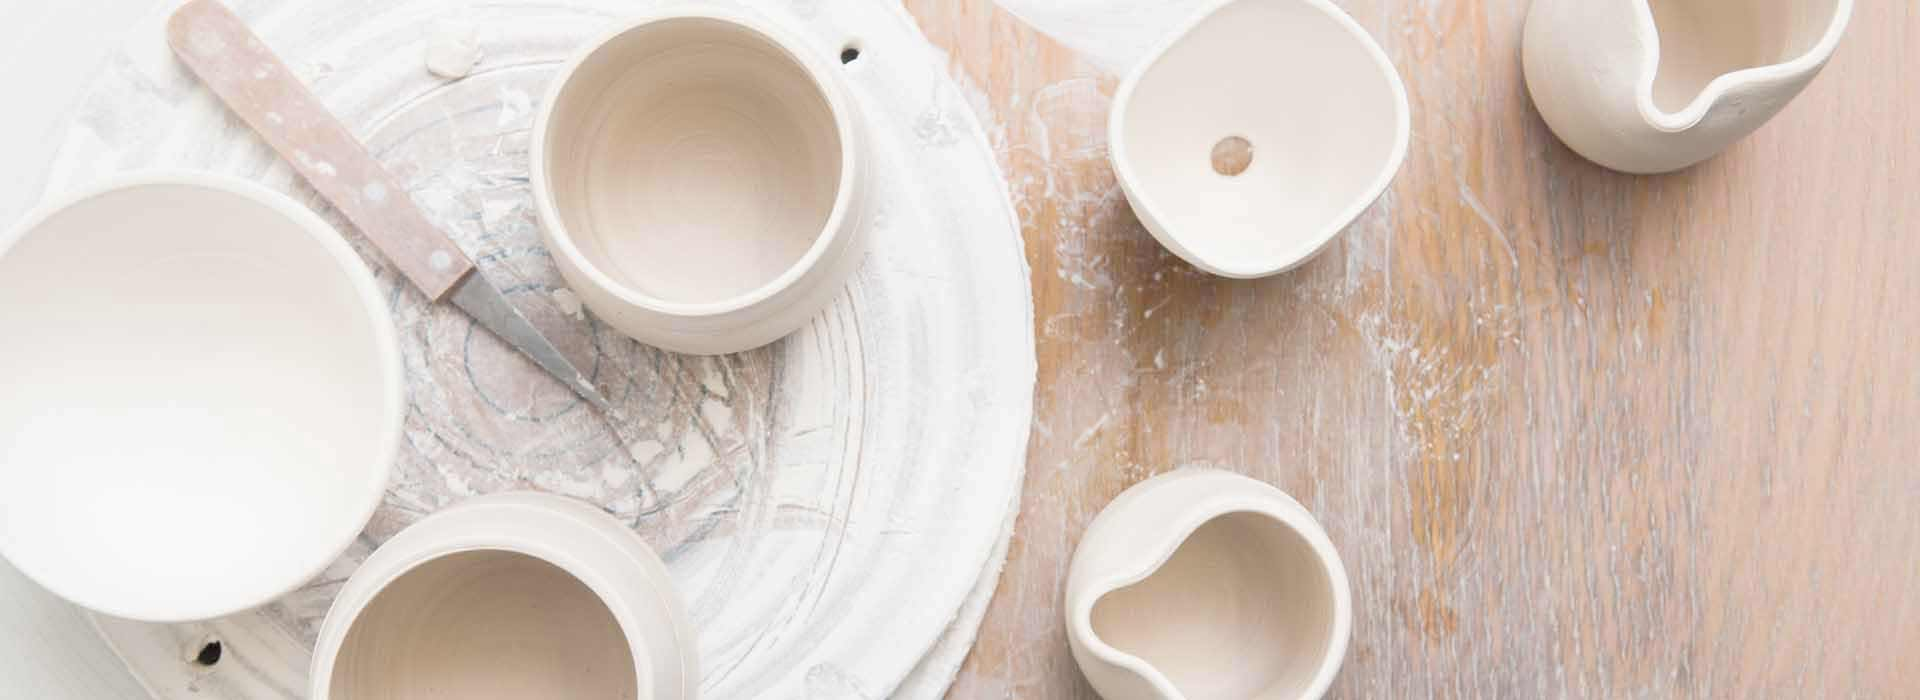 Pottery classes in Gauteng